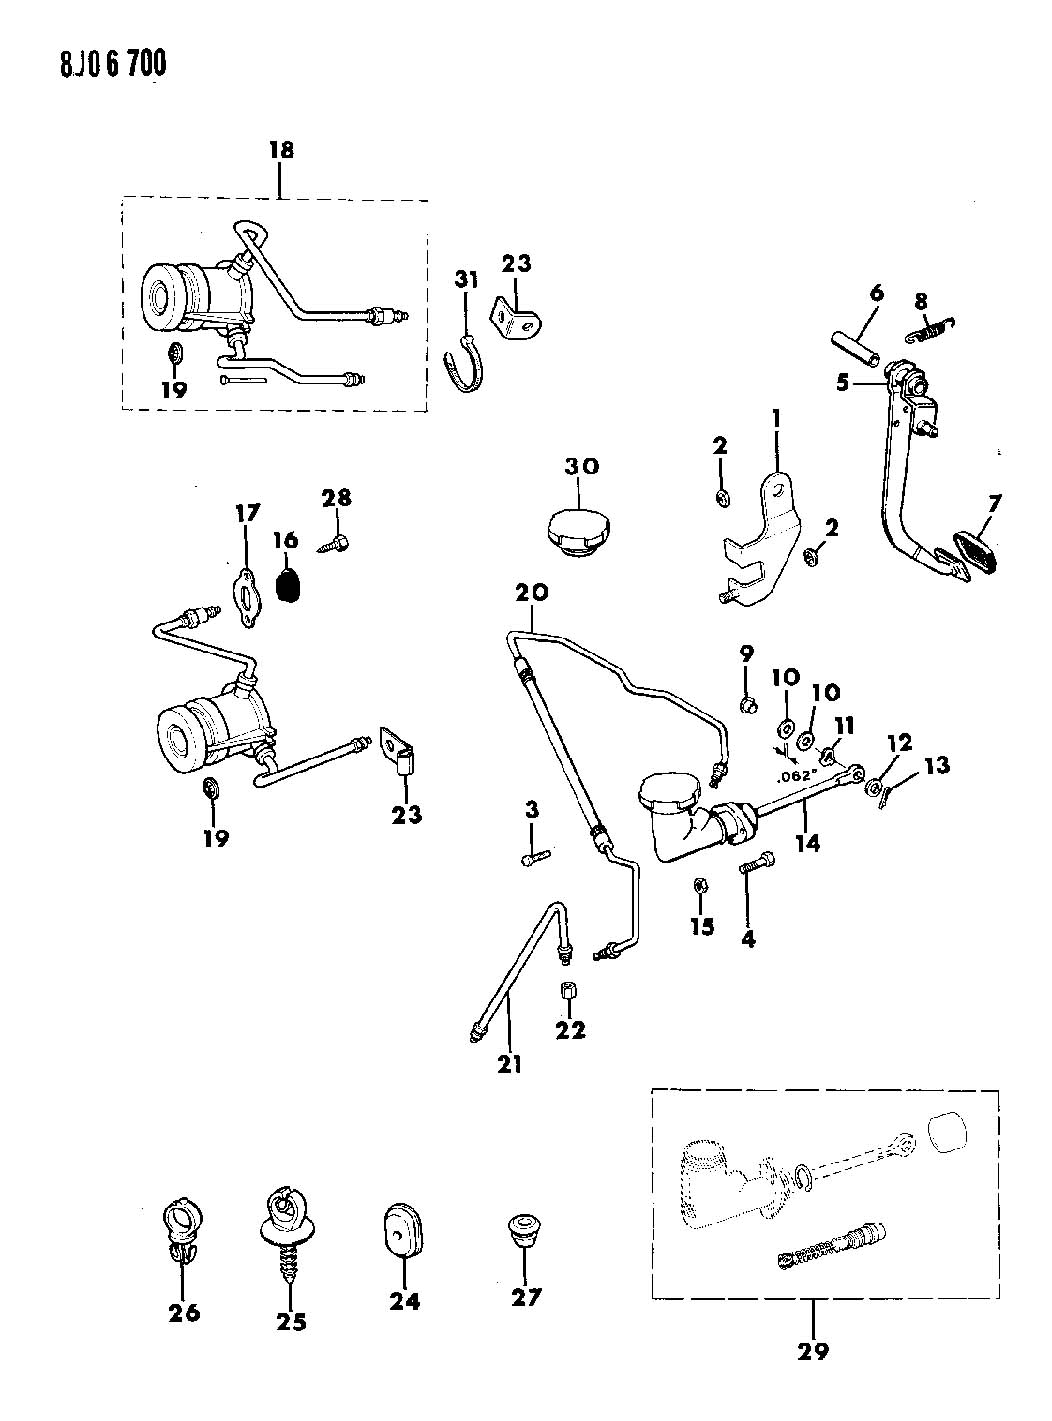 1961 Chrysler Wiring Diagram Starting Know About 99 Boxster Starter Auto